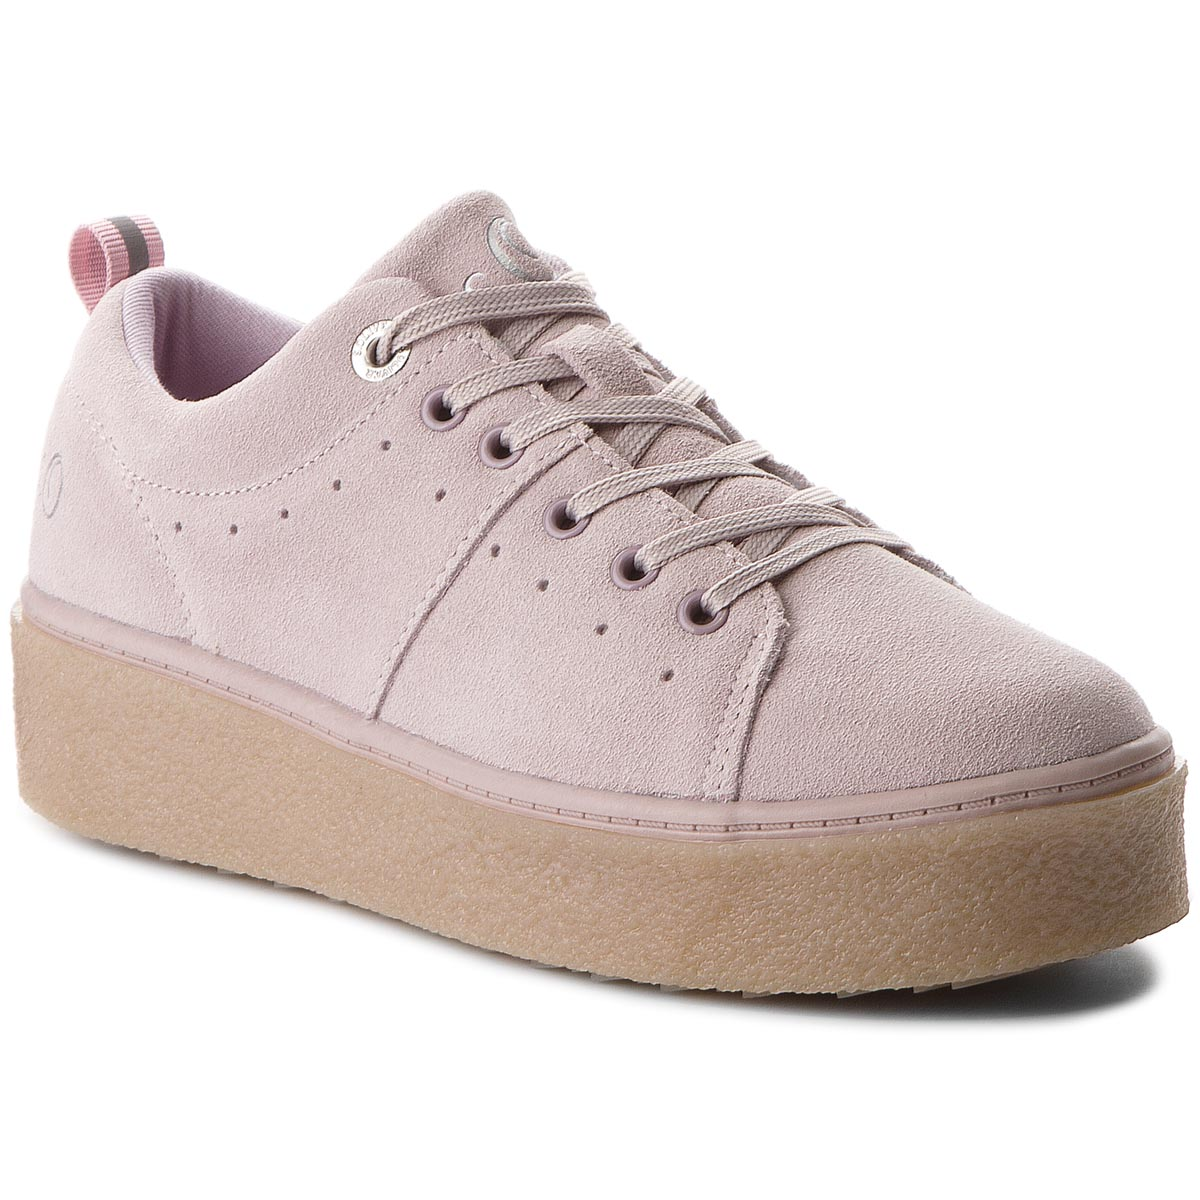 Sneakersy S.OLIVER - 5-23629-20 Lt Rose 546